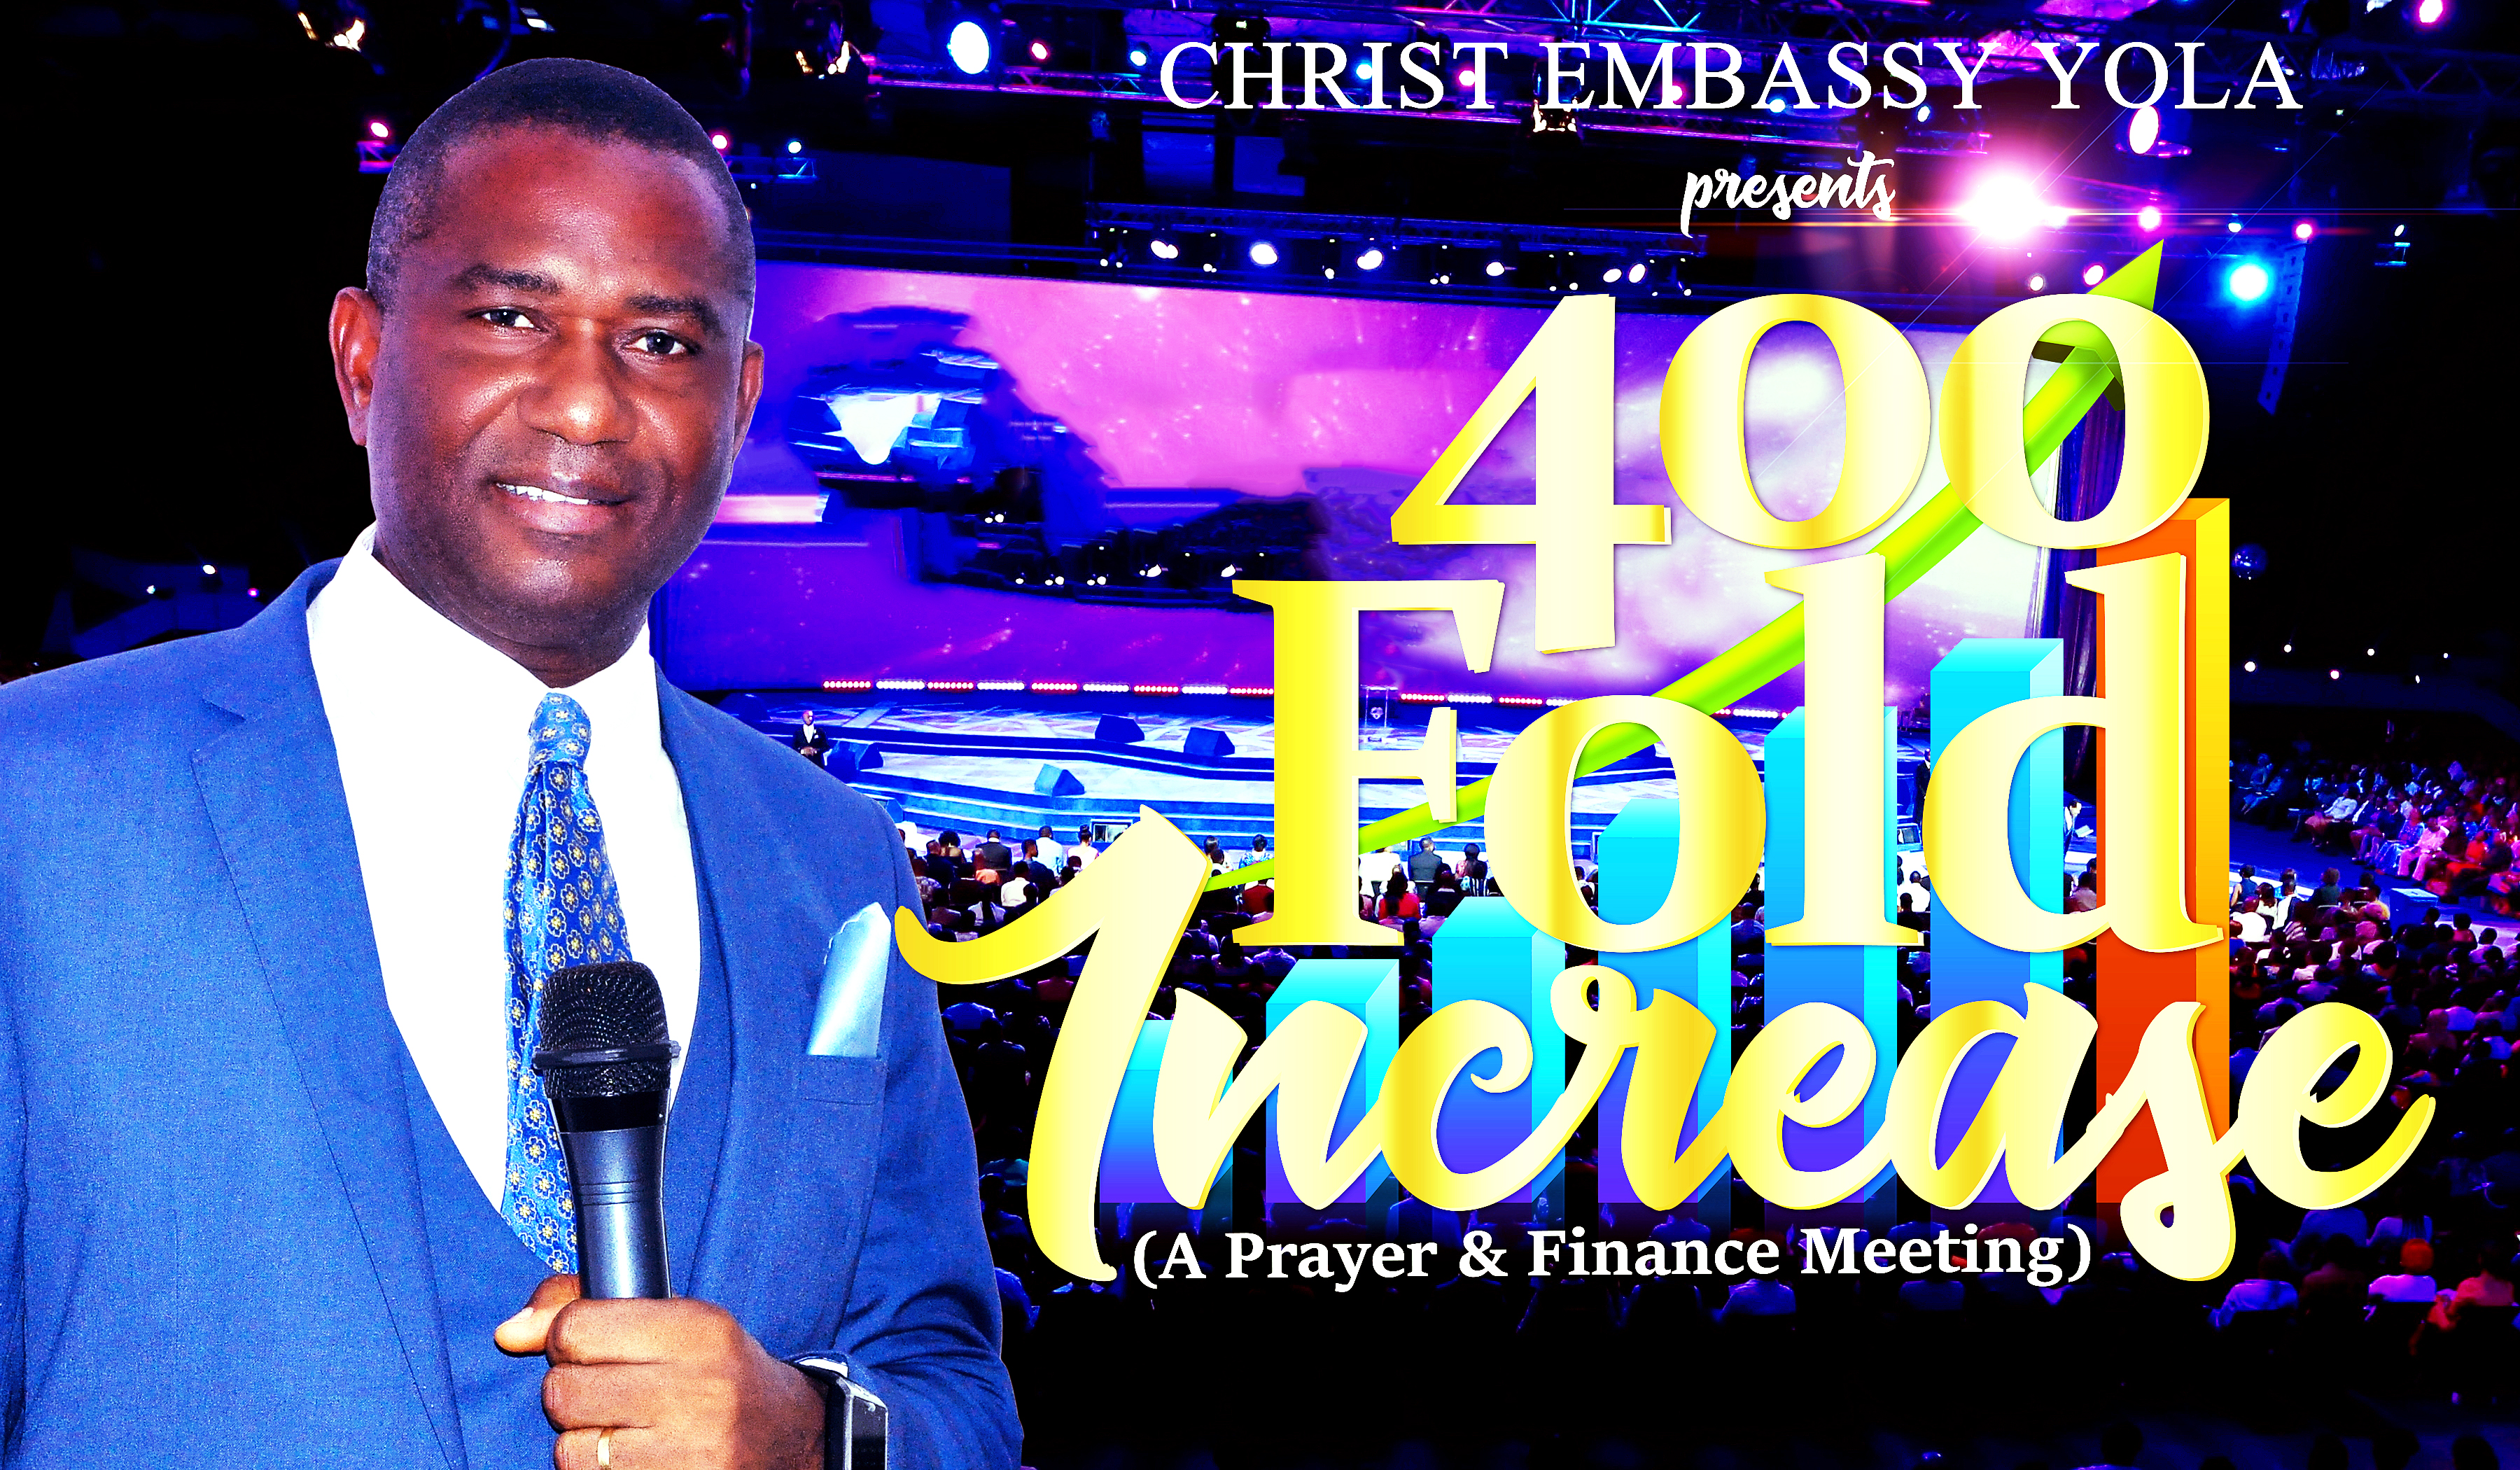 Pastor Sir, we celebrate your